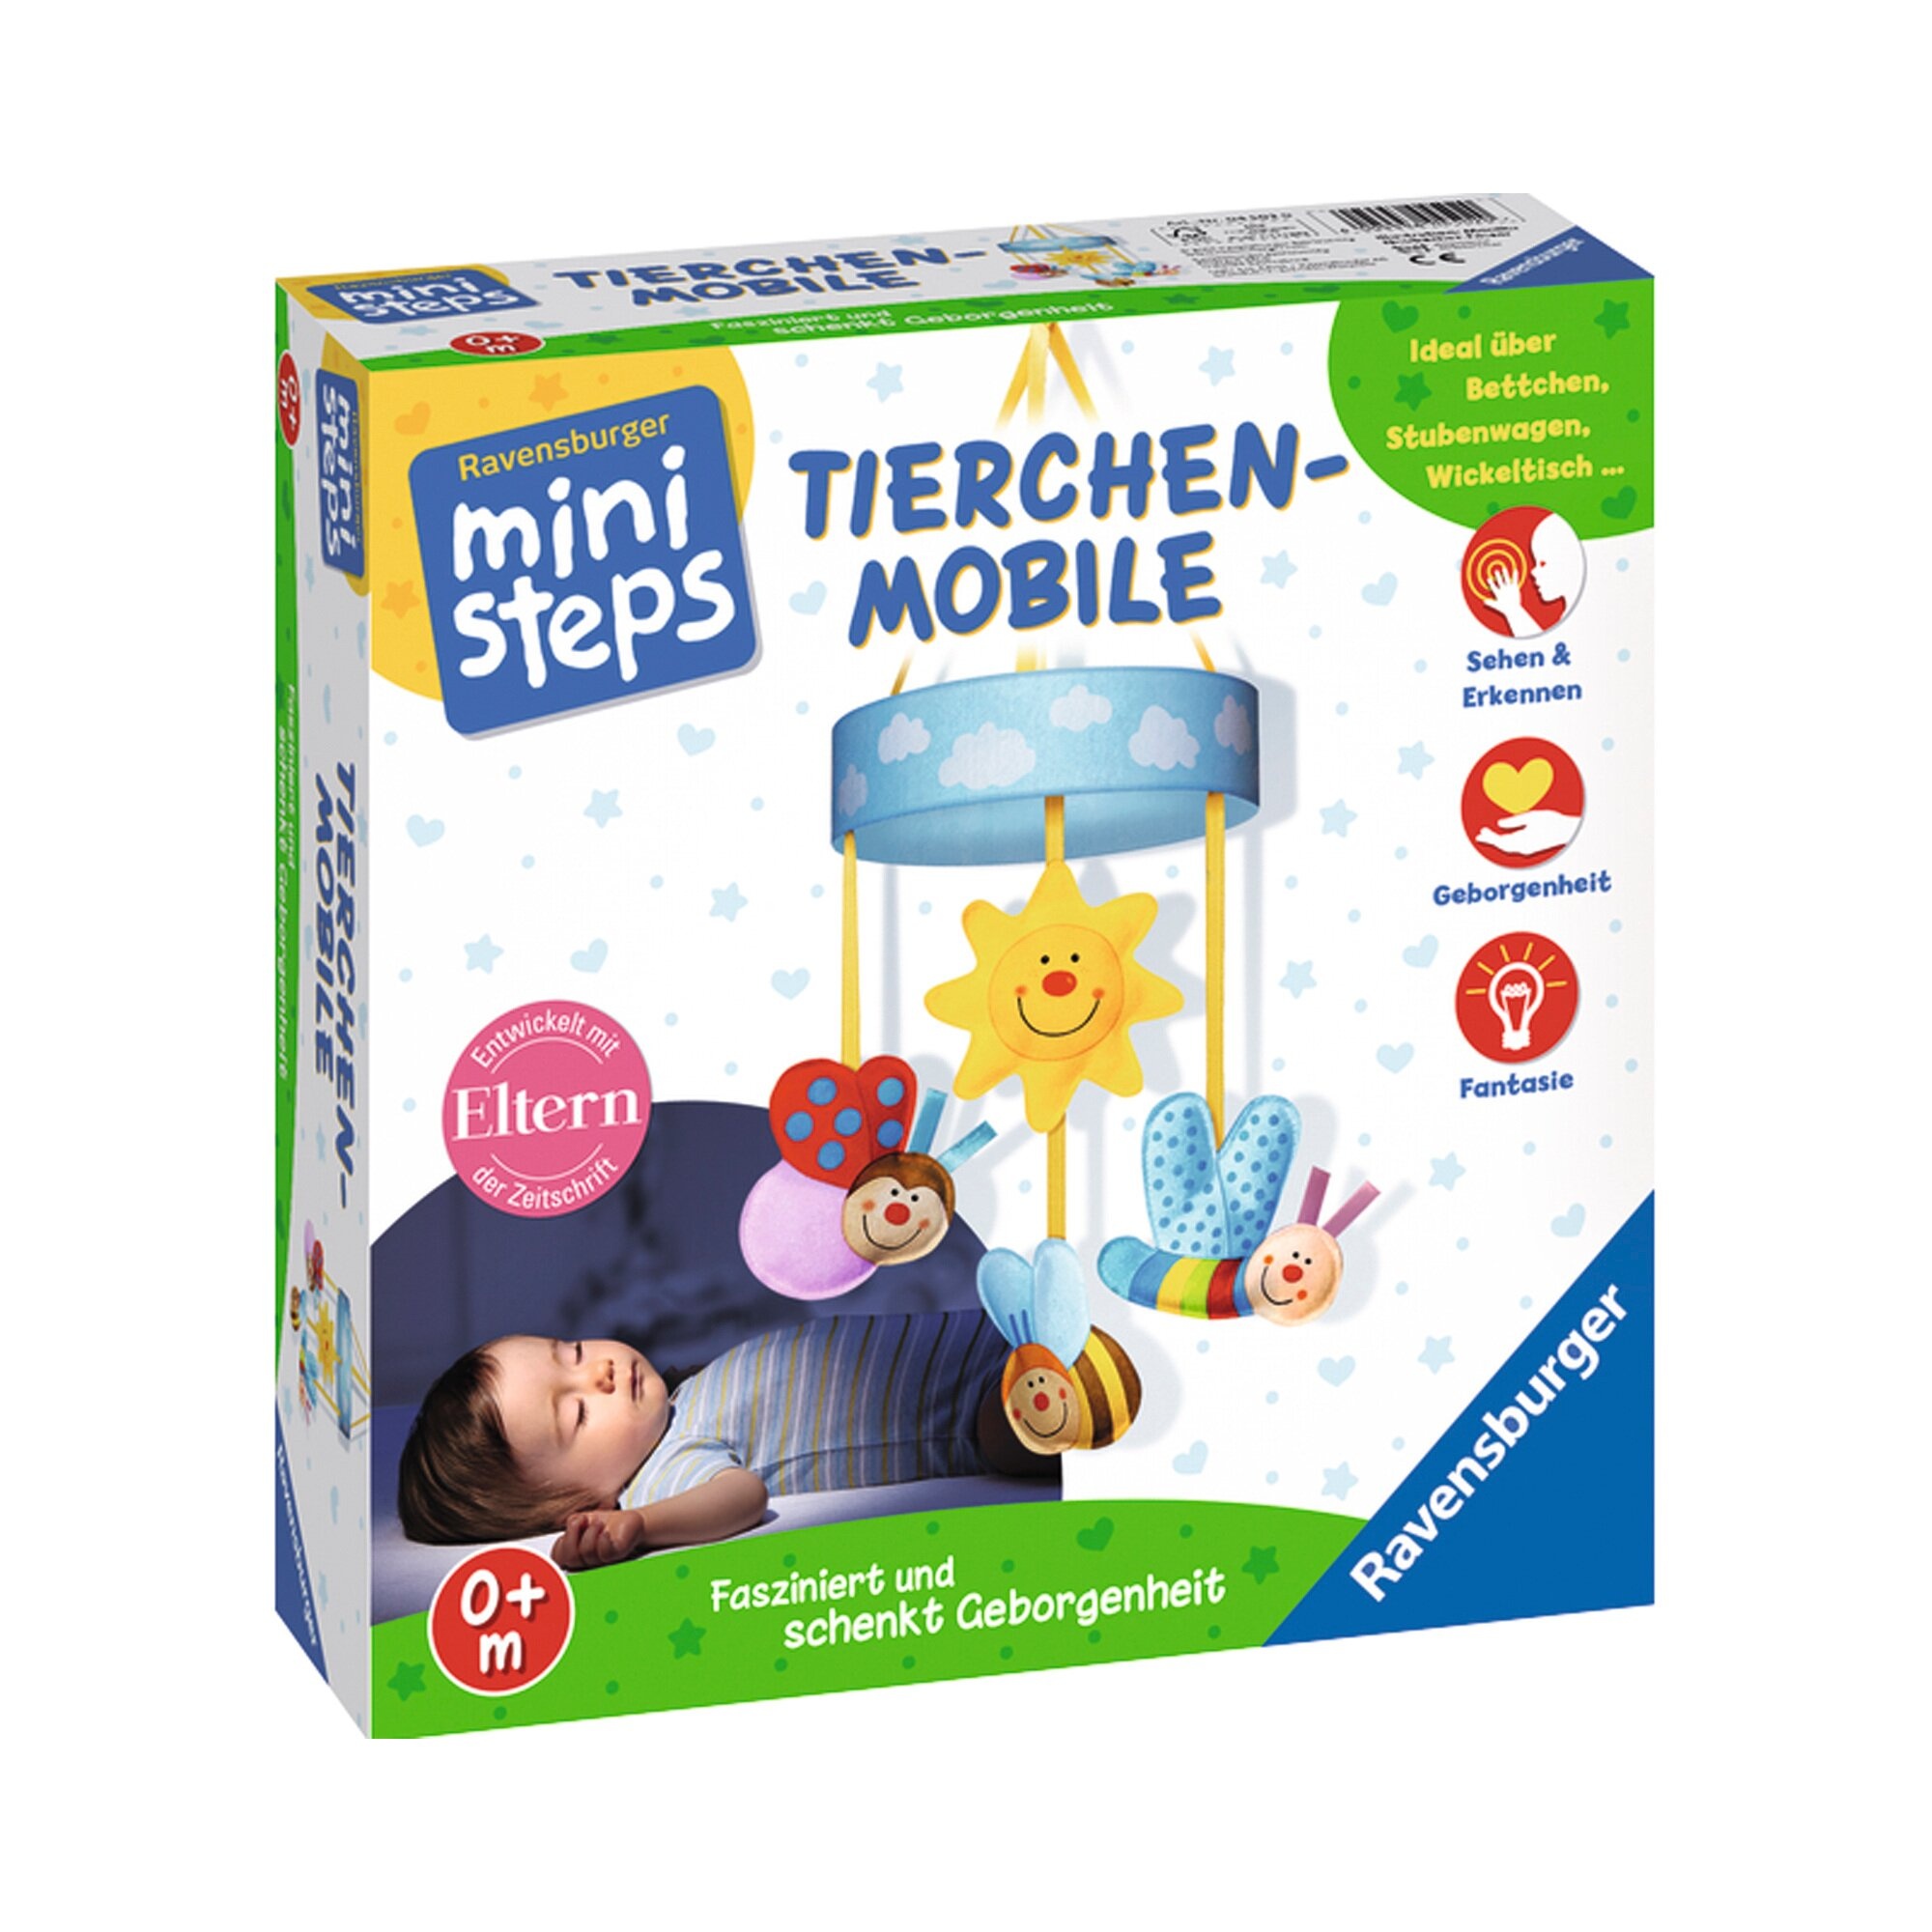 ministeps-mobile-tierchen